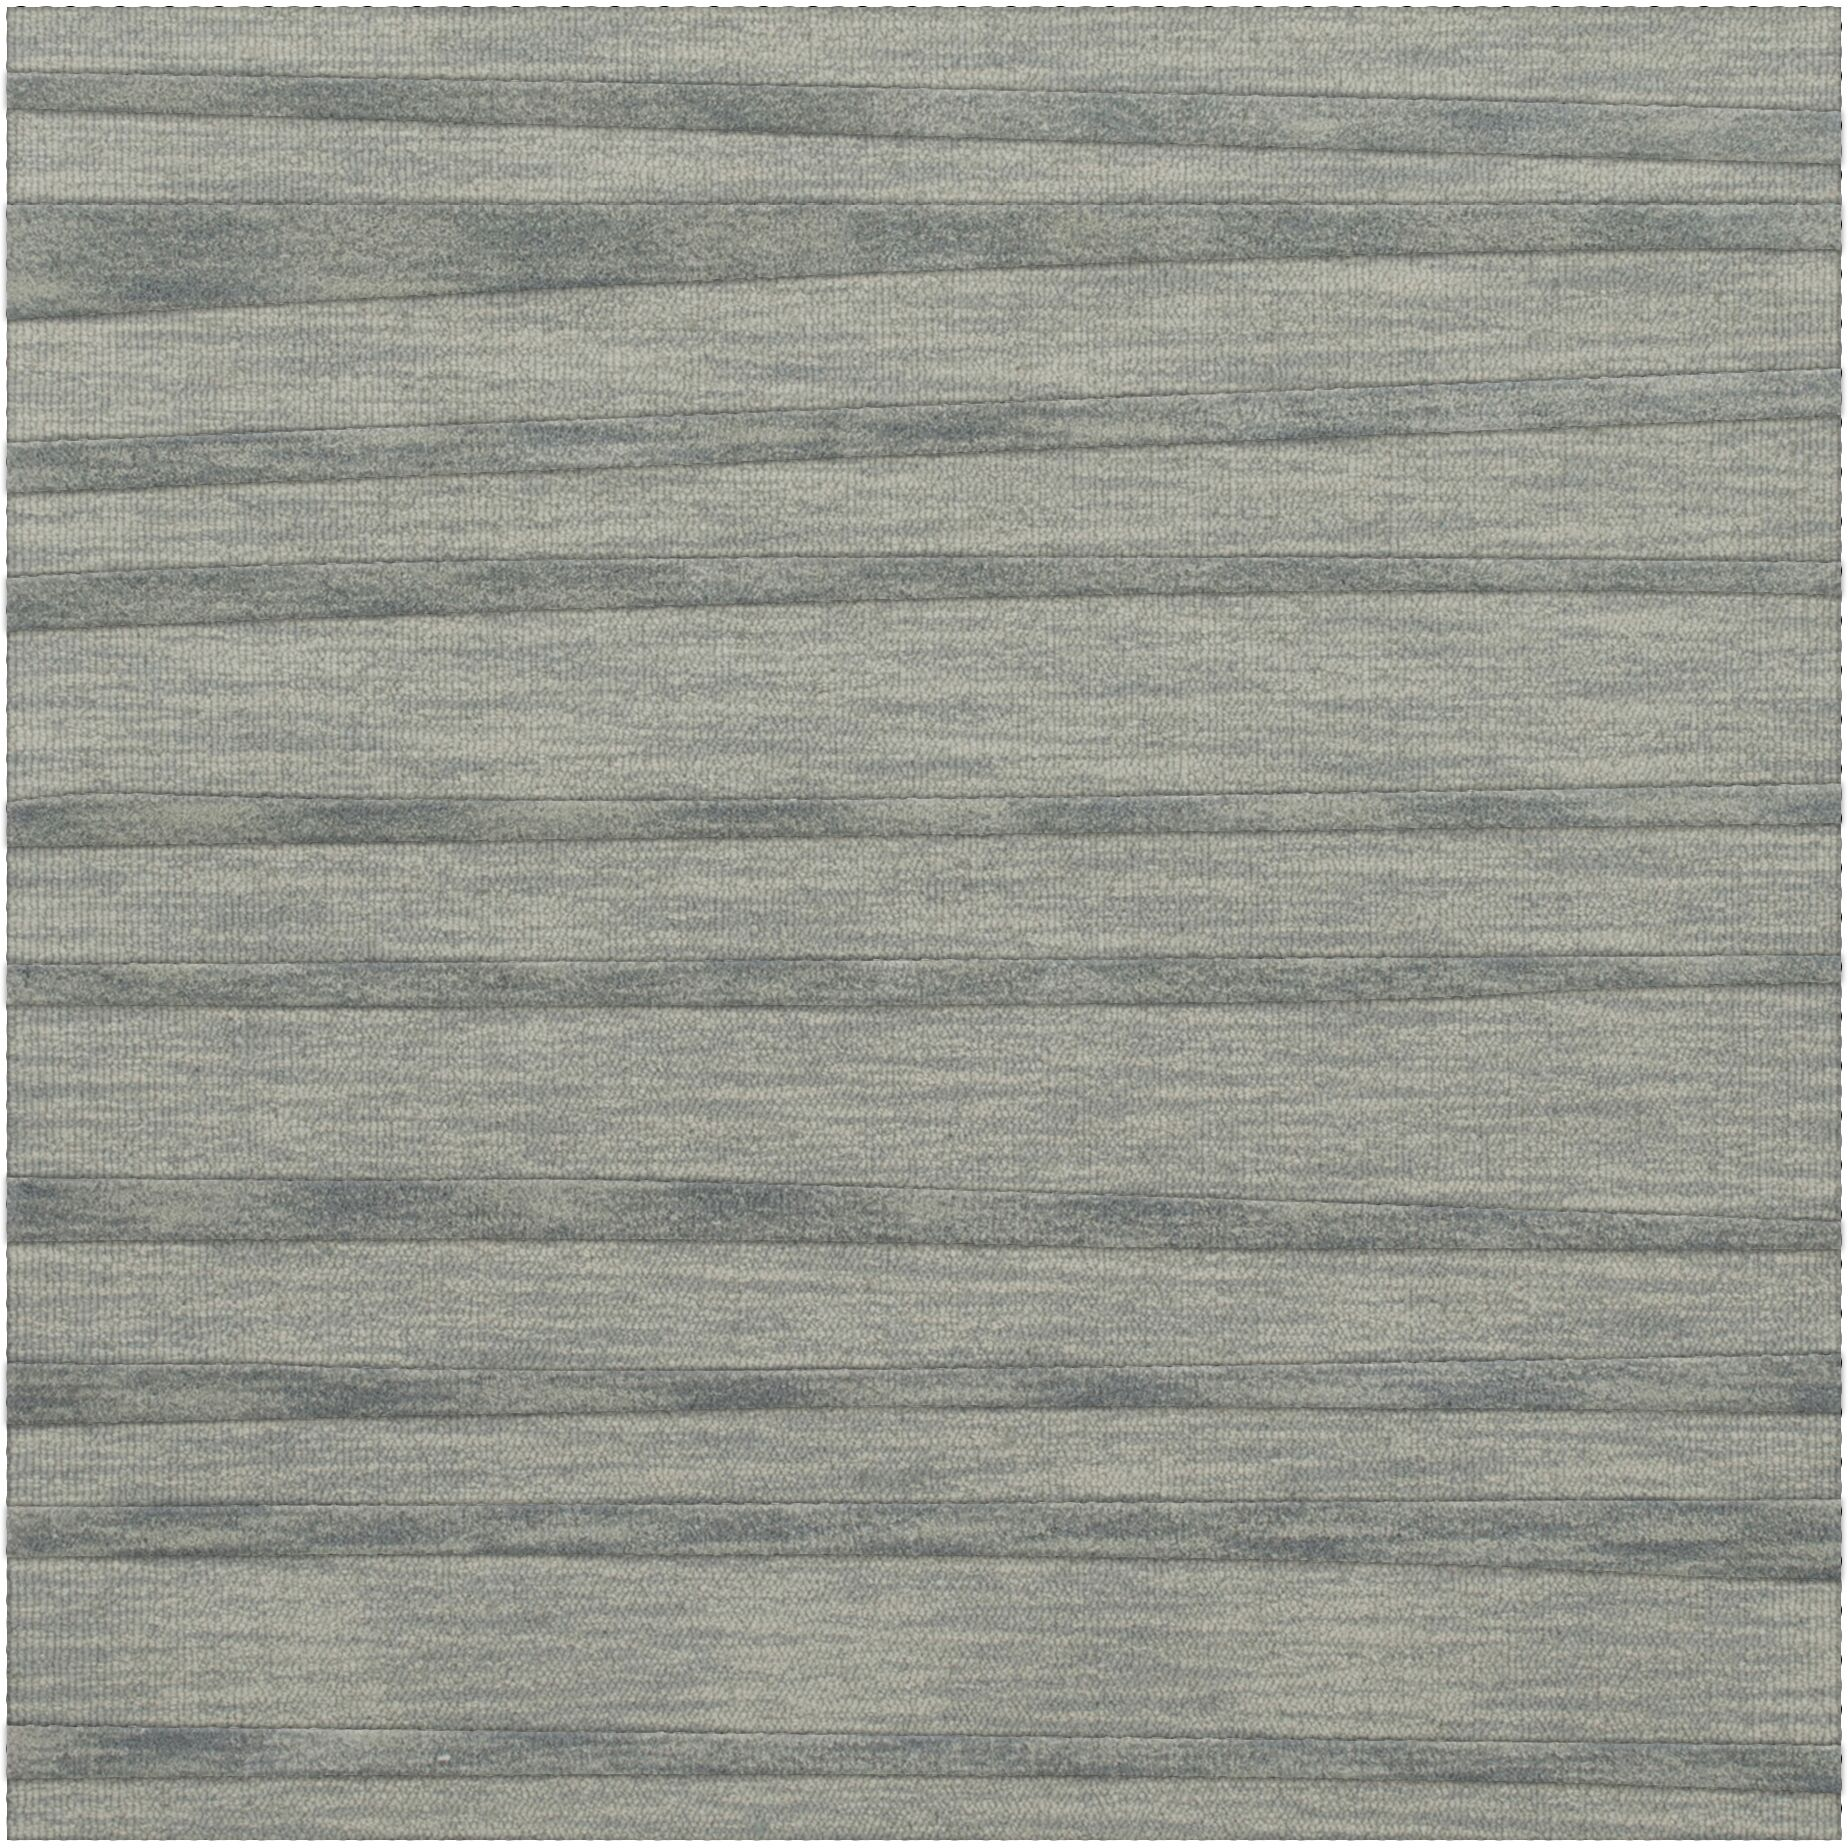 Dover Tufted Wool Sea Glass Area Rug Rug Size: Square 8'